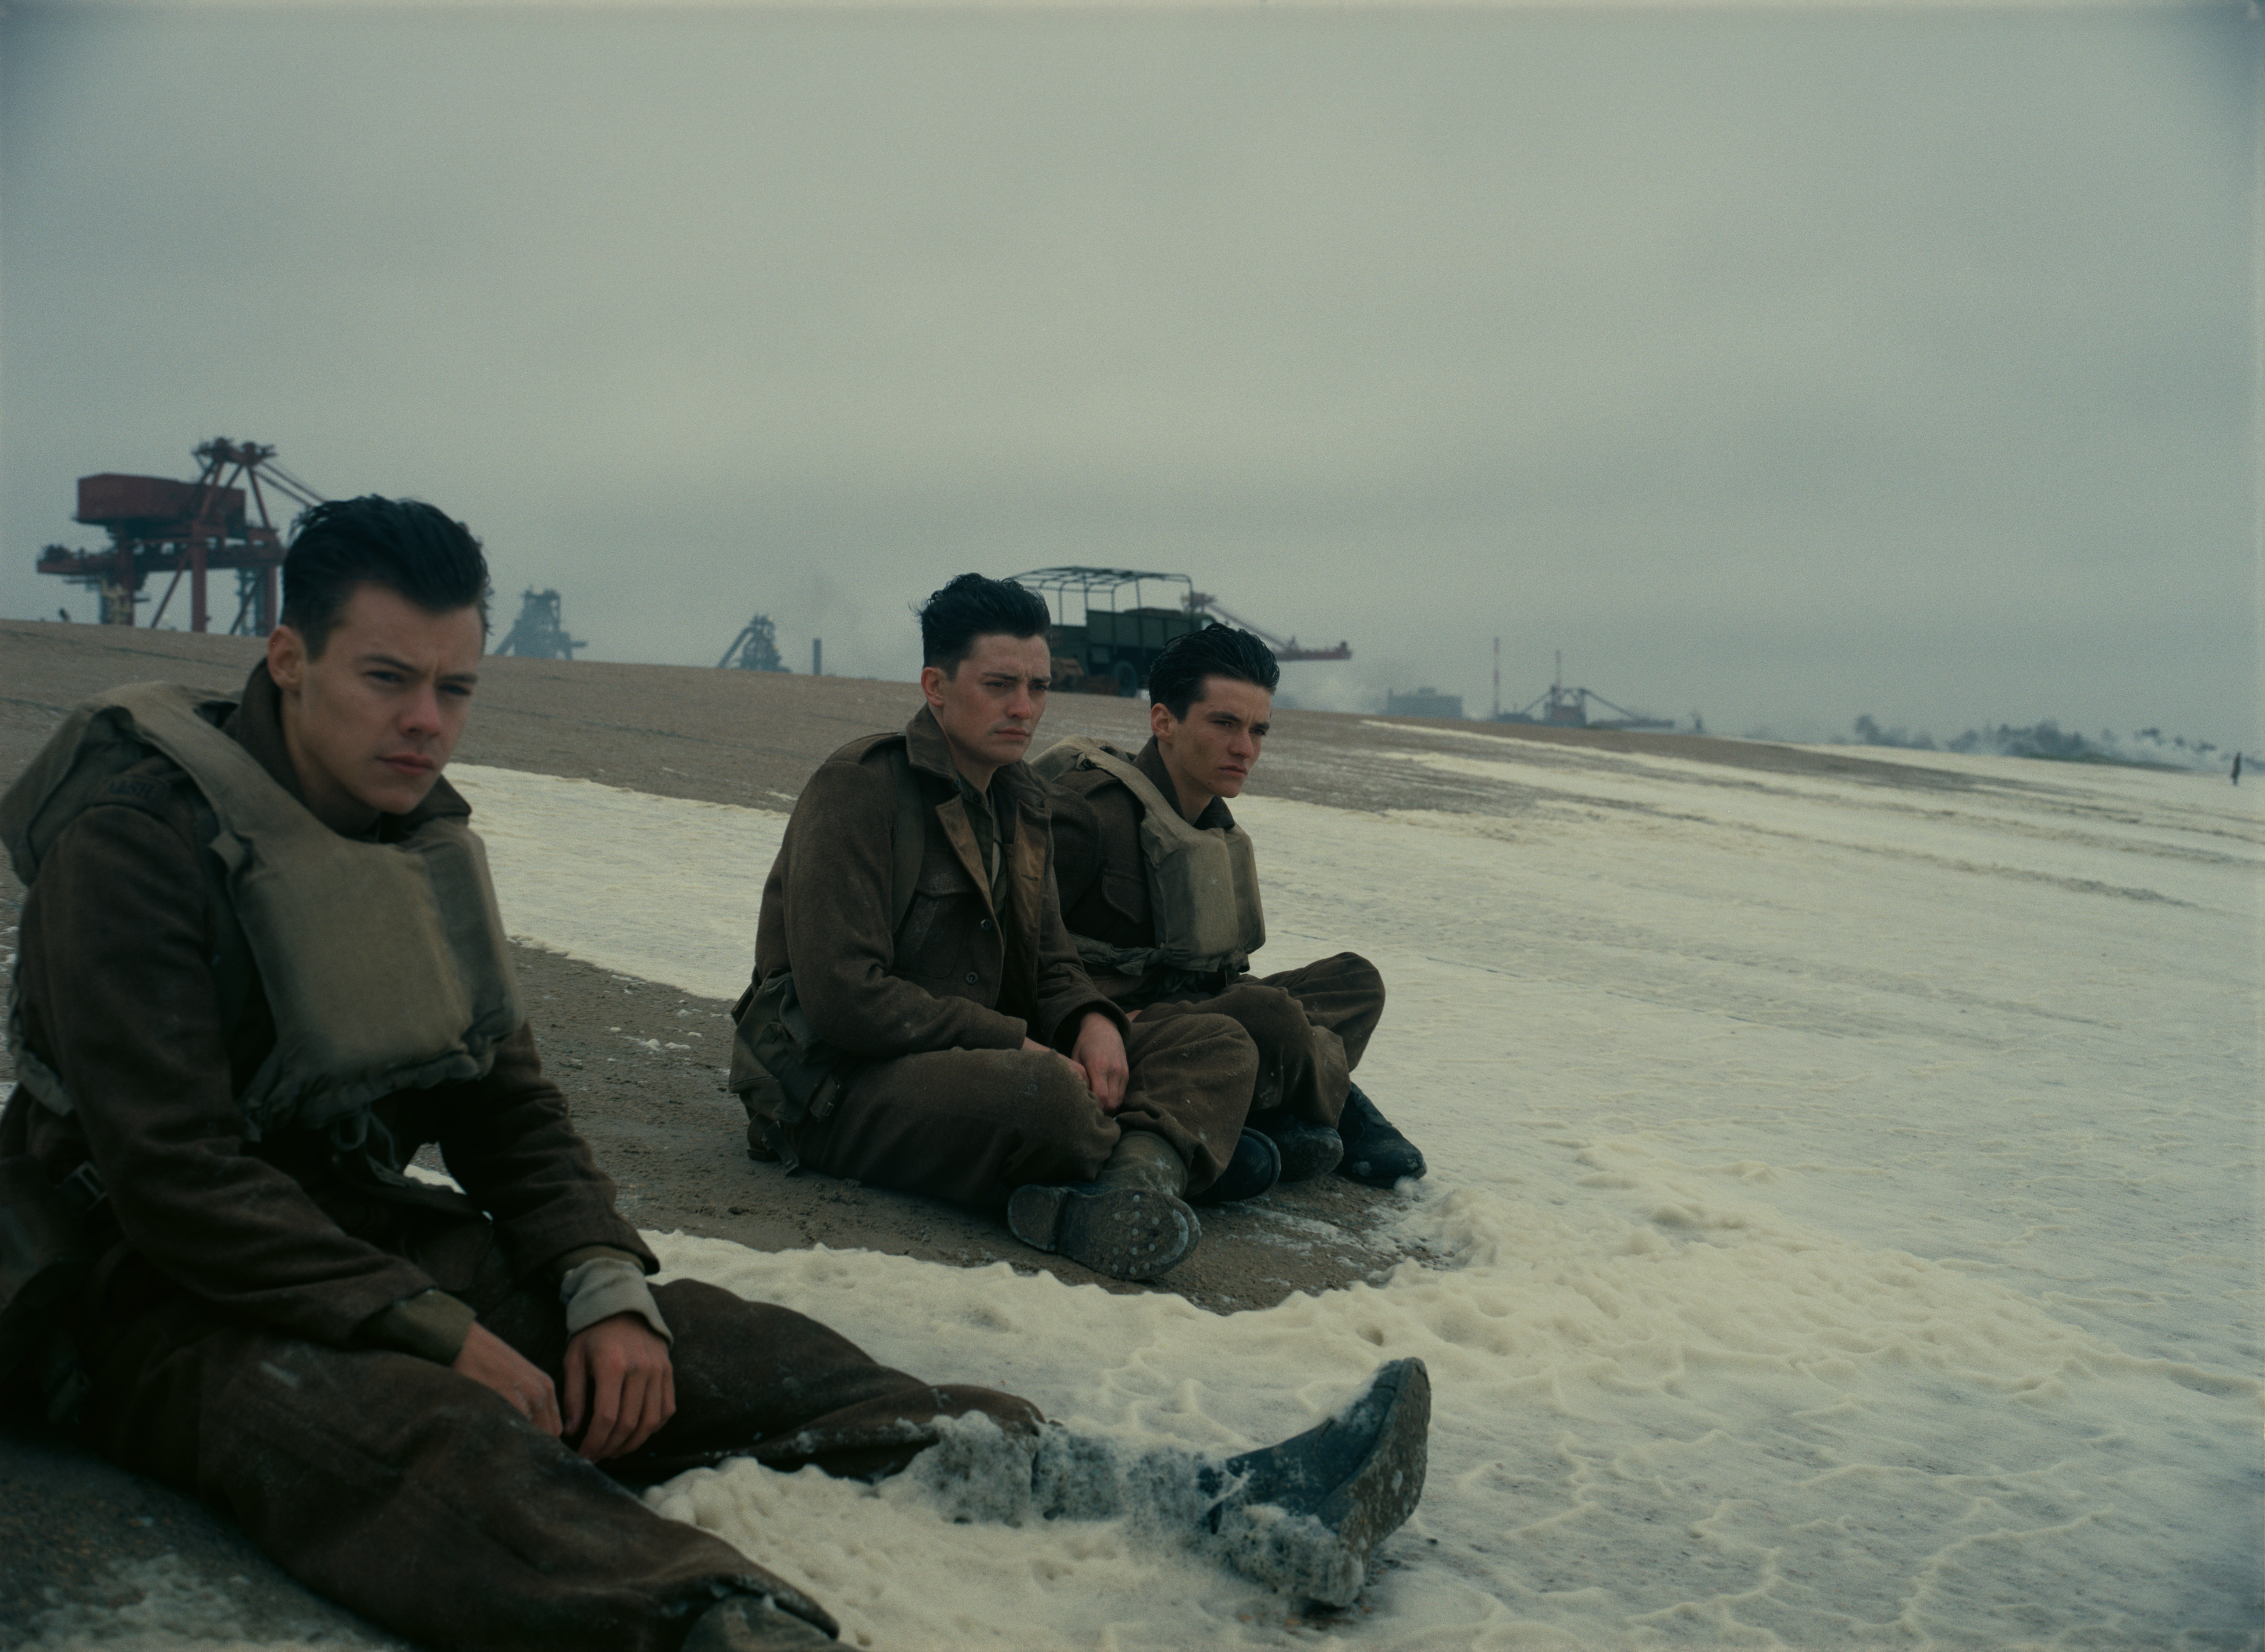 Dunkirk - soldiers sitting on the beach